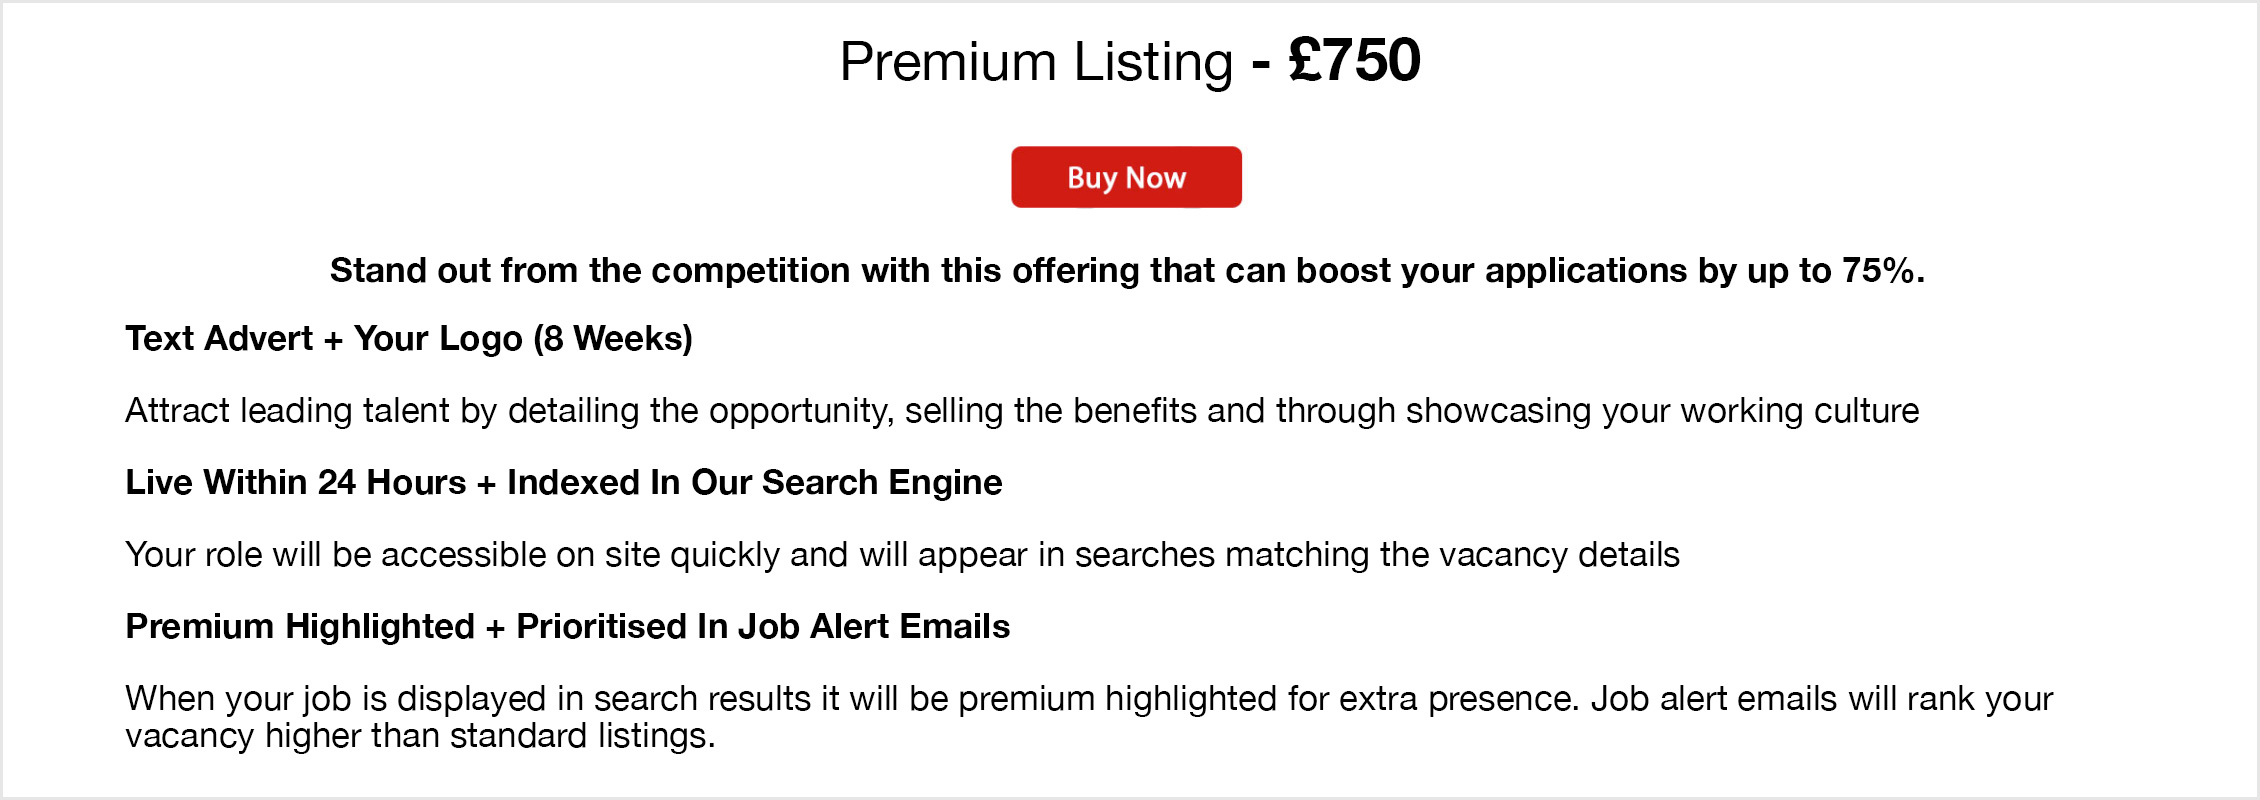 Premium Listing - £750. Buy Now. Stand out from the competition with this offering that can boost your applications by up to 75%. Text Advert + Your Logo (8 Weeks)- Attract leading talent by detailing the opportunity, selling the benefits and through showcasing your working culture. Live Within 24 Hours + Indexed In Our Search Engine - Your role will be accessible on site quickly and will appear in searches matching the vacancy details. Premium Highlighted + Prioritised In Job Alert Emails - When your job is displayed in search results it will be premium highlighted for extra presence. Job alert emails will rank your vacancy higher than standard listings.